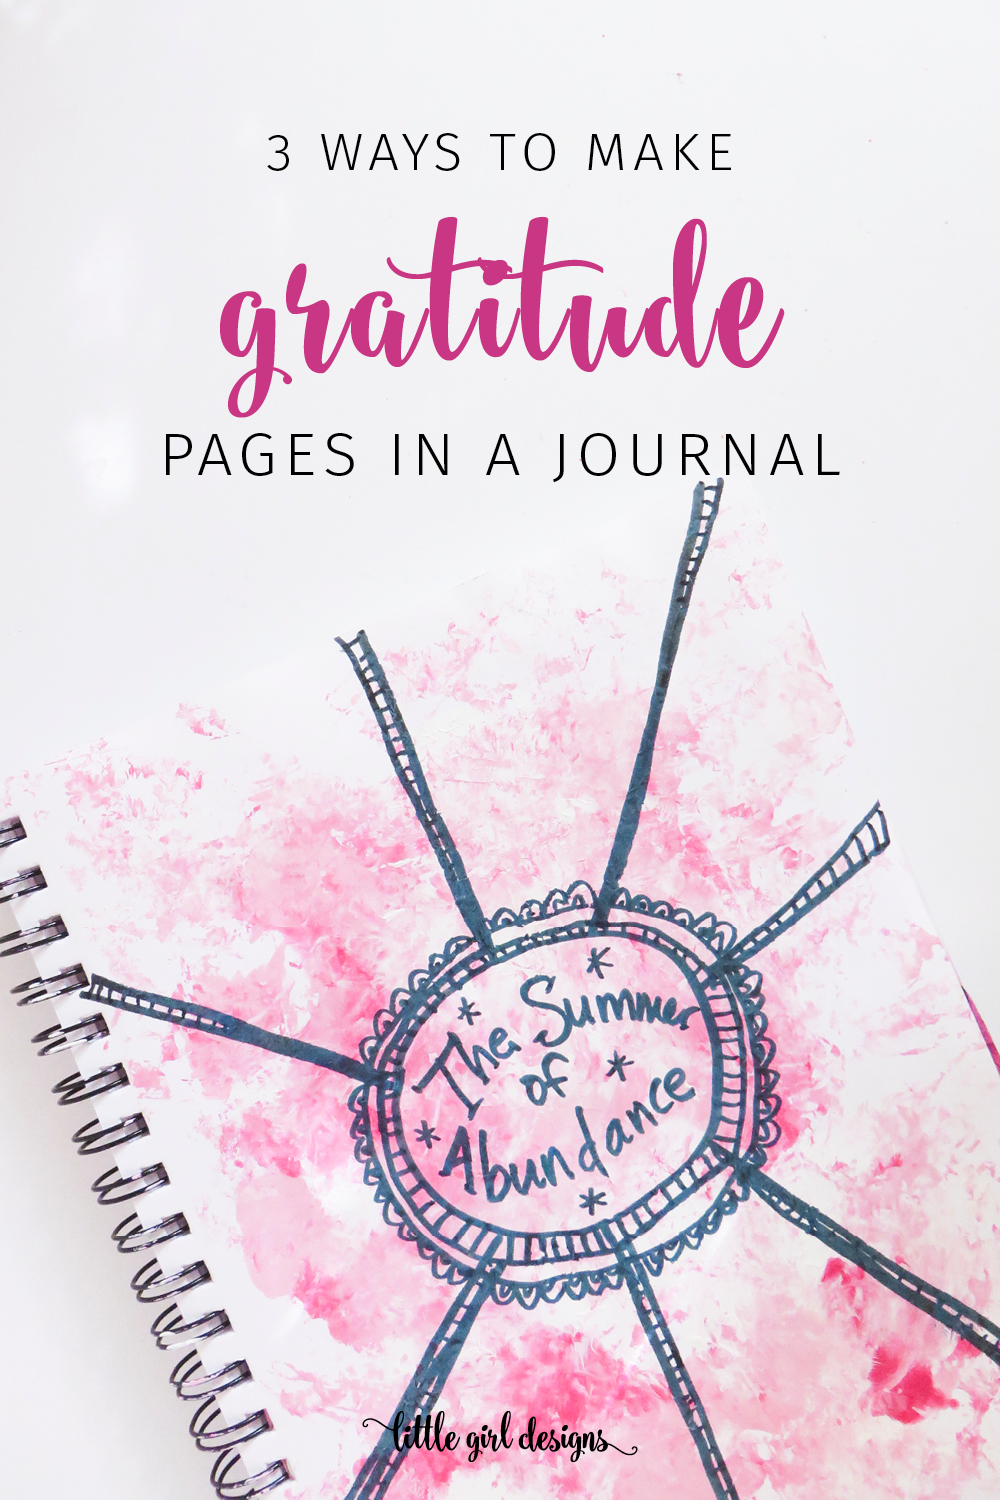 Want to start a gratitude journal? You can DIY your own in an art journal, bullet journal, or regular journal. Here are three fun ways to make gratitude pages in your journal. Grab your paints—this is going to be colorful and fun! Oh, and children LOVE these prompts and ideas too. :)